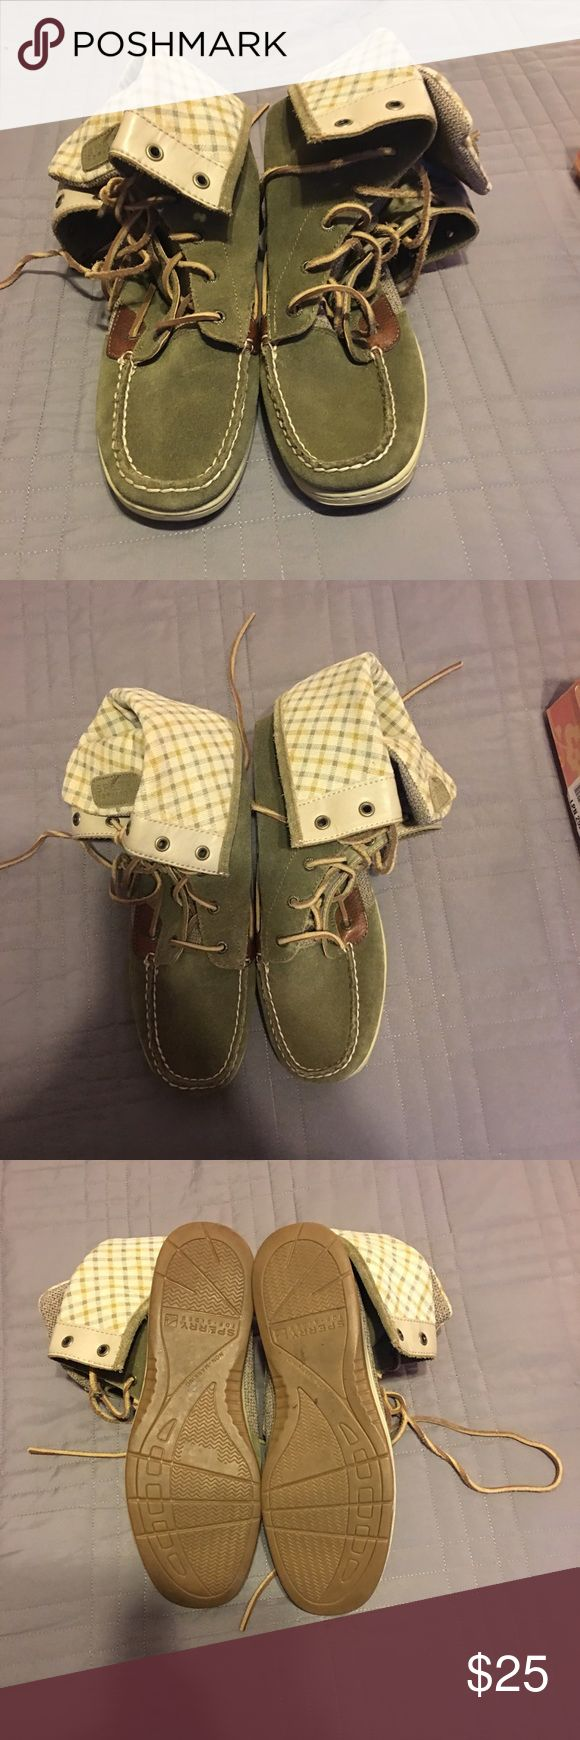 Sperry high tops Green and plaid, Sperry high tops. Size 10. Sperry Top-Sider Shoes